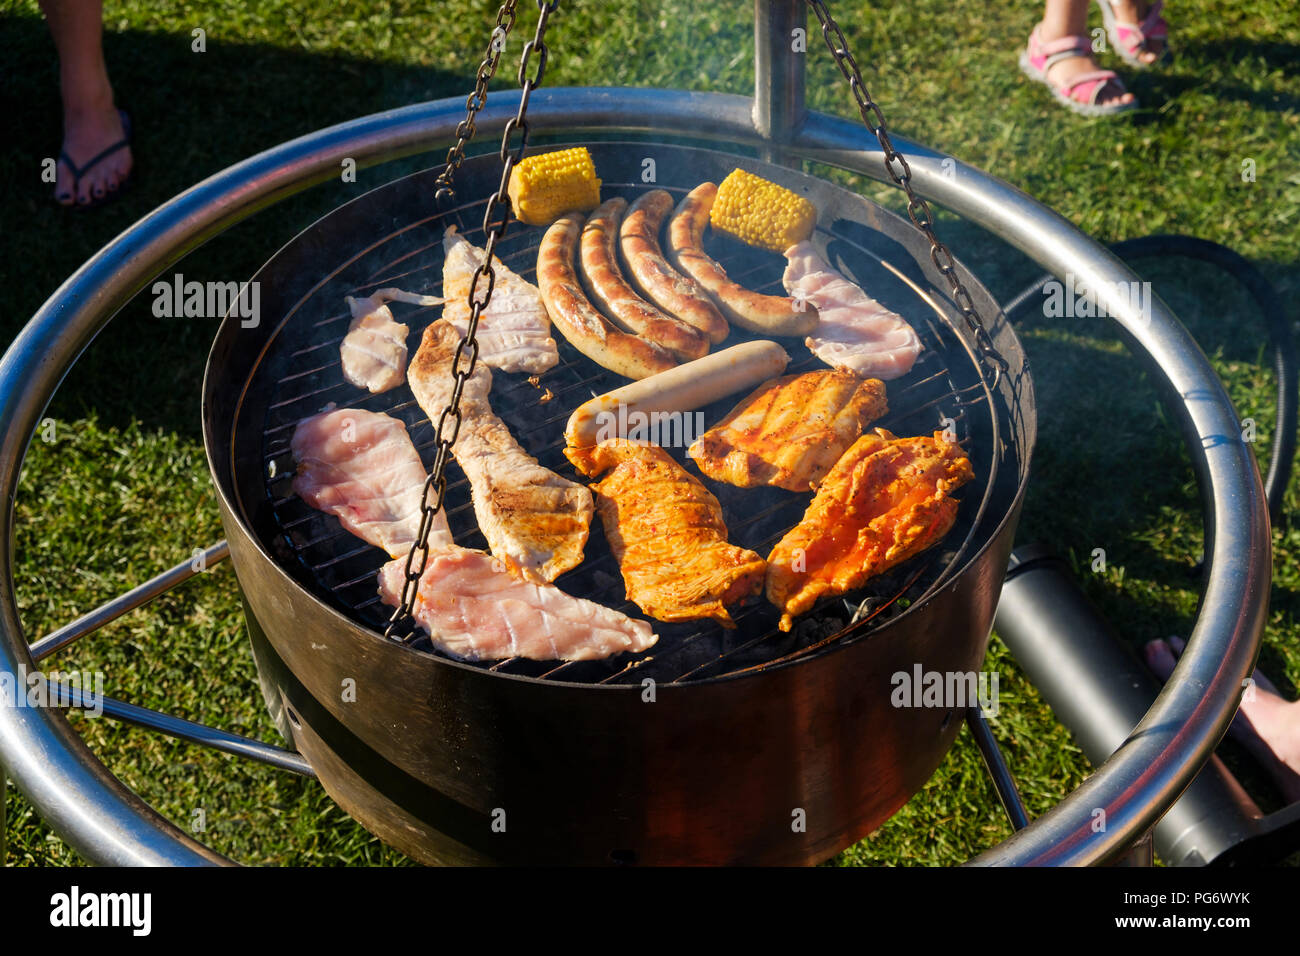 Meet and sausages on barbecue grill - Stock Image